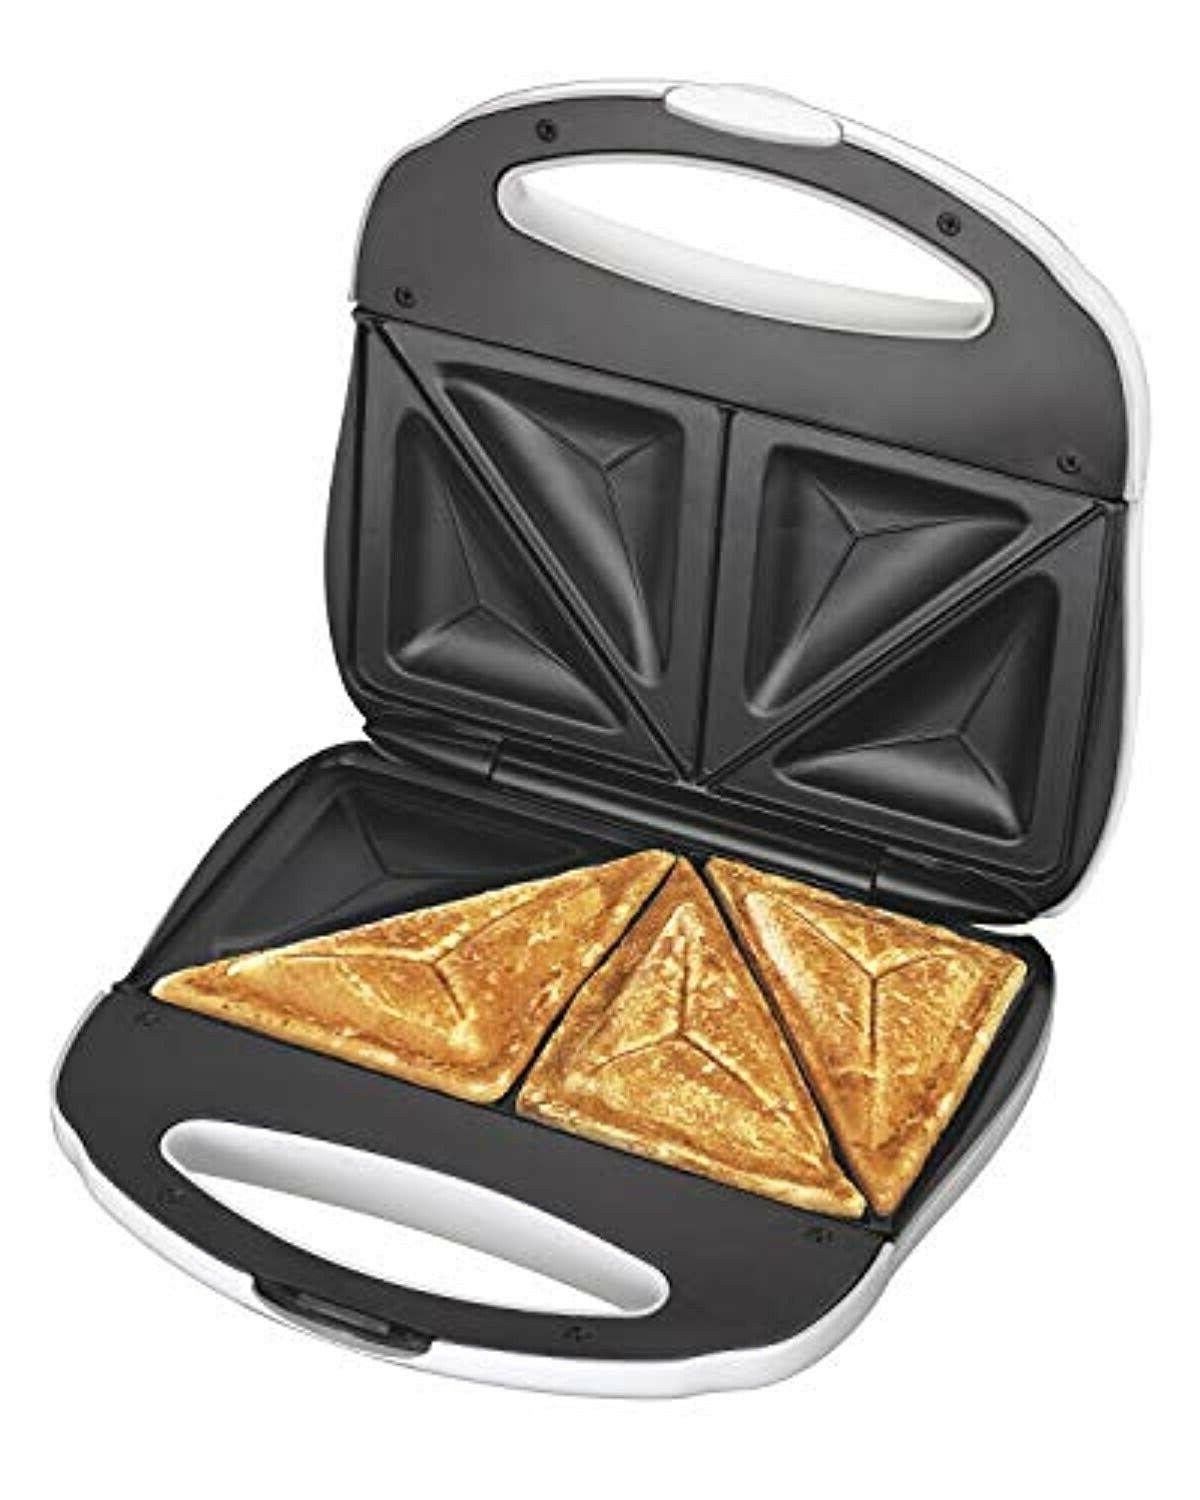 sandwich maker makes omelettes grilled cheese 4